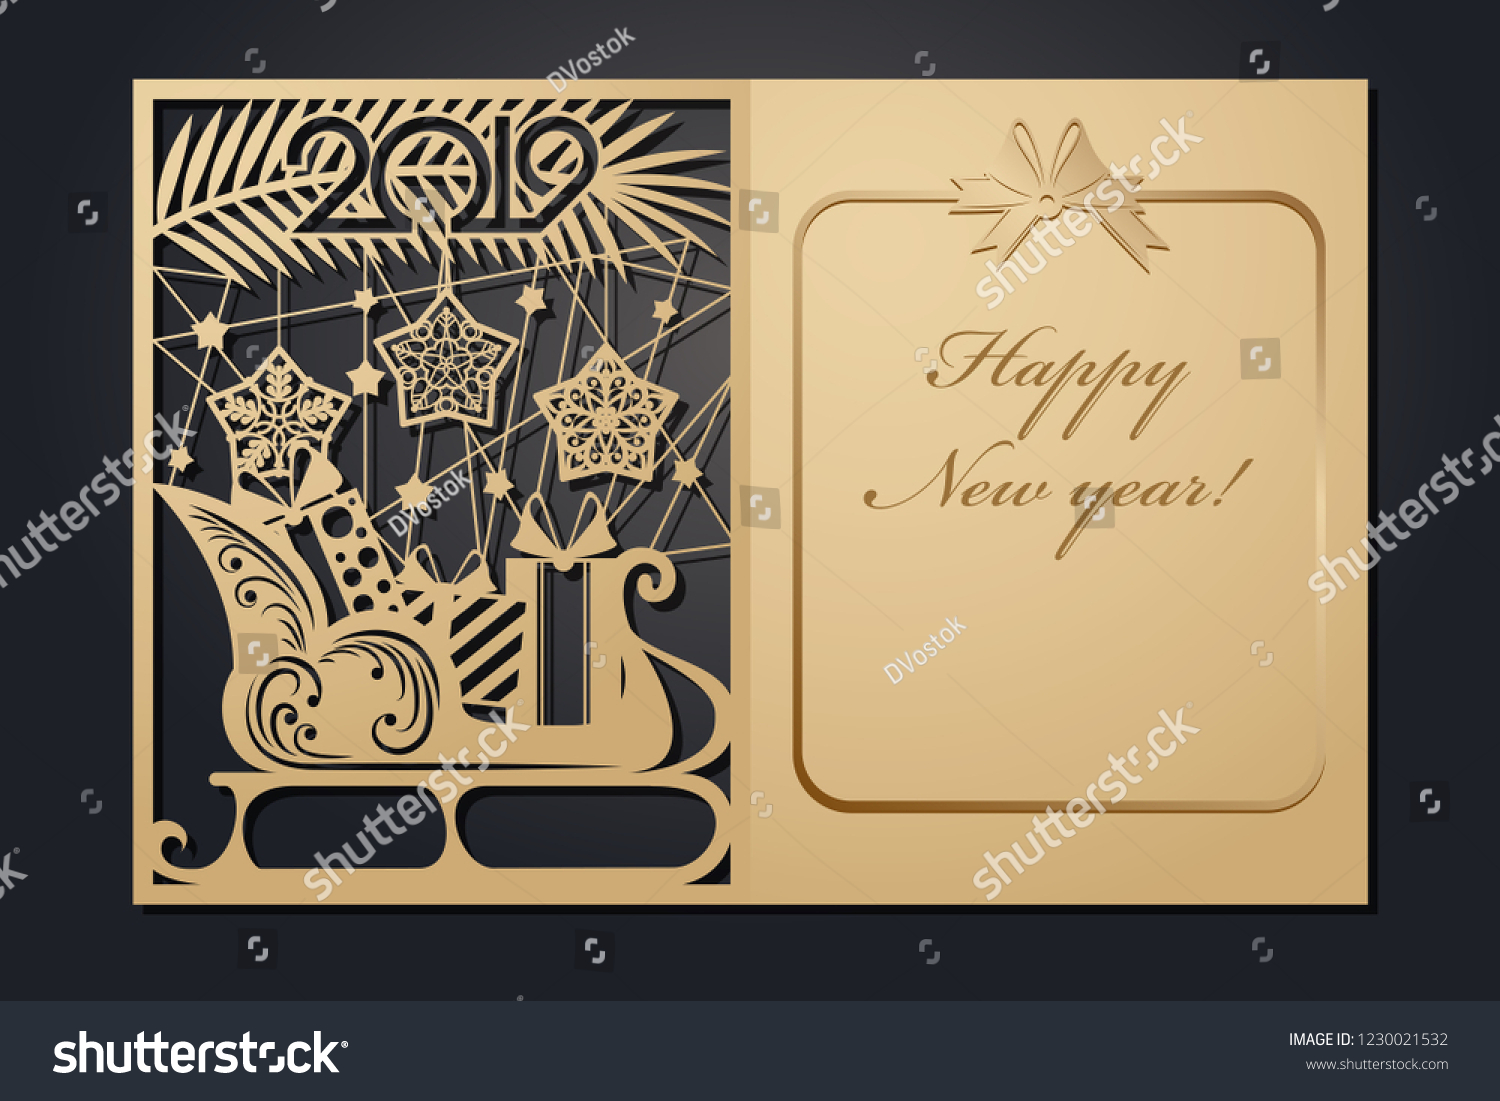 template christmas cards for laser cutting through silhouette new years picture vector illustration